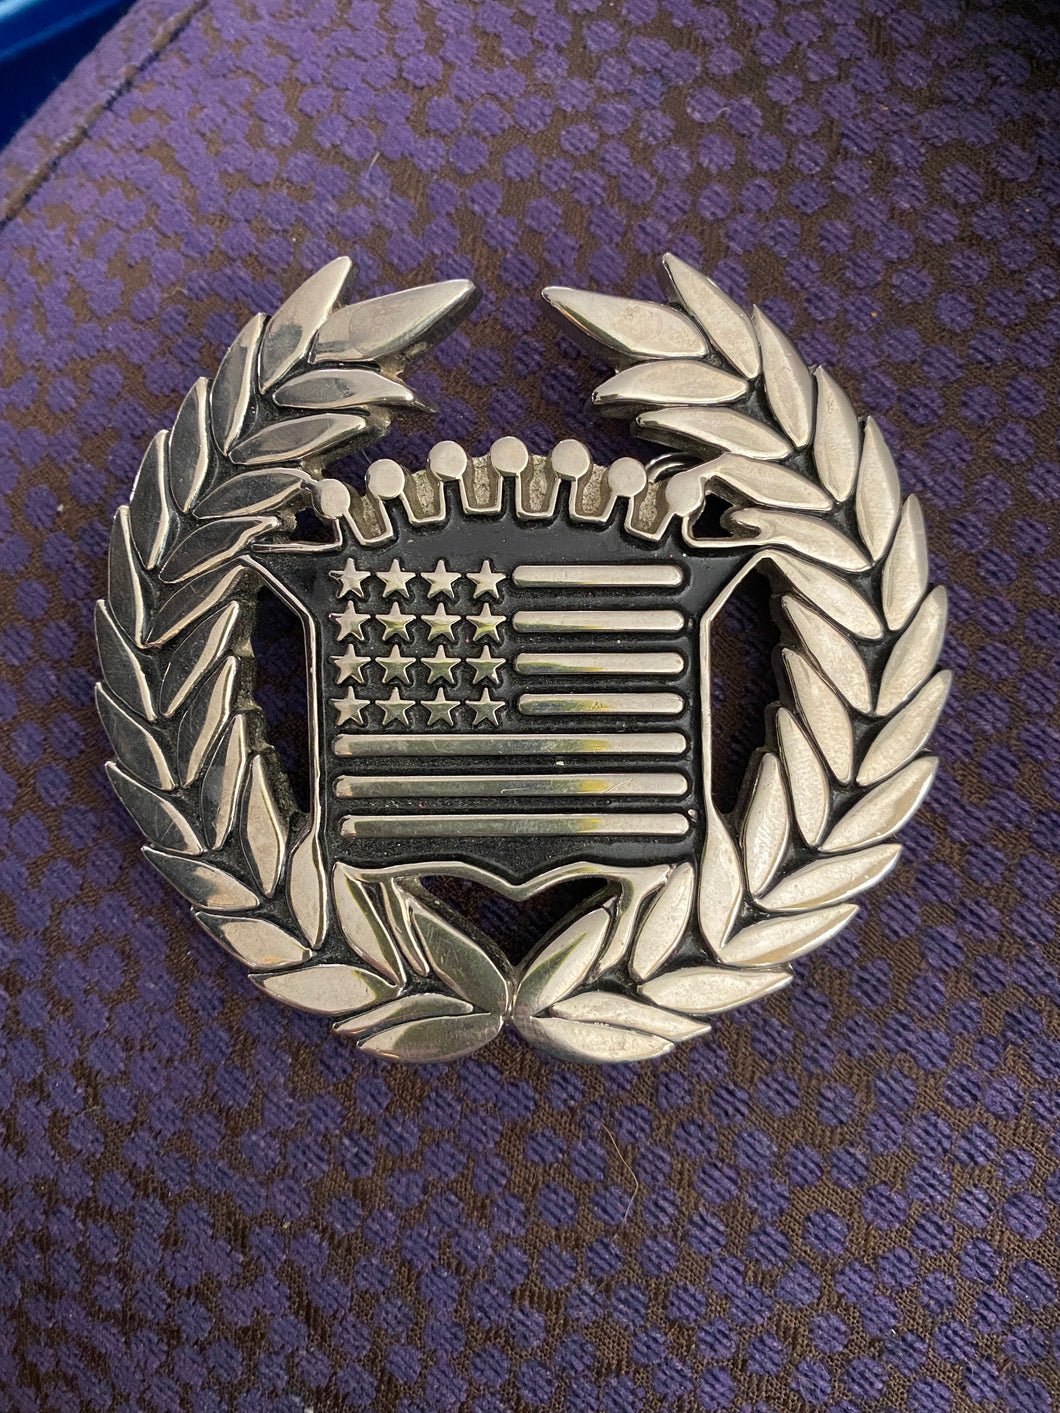 Famous Stars and Stripes Belt Buckle